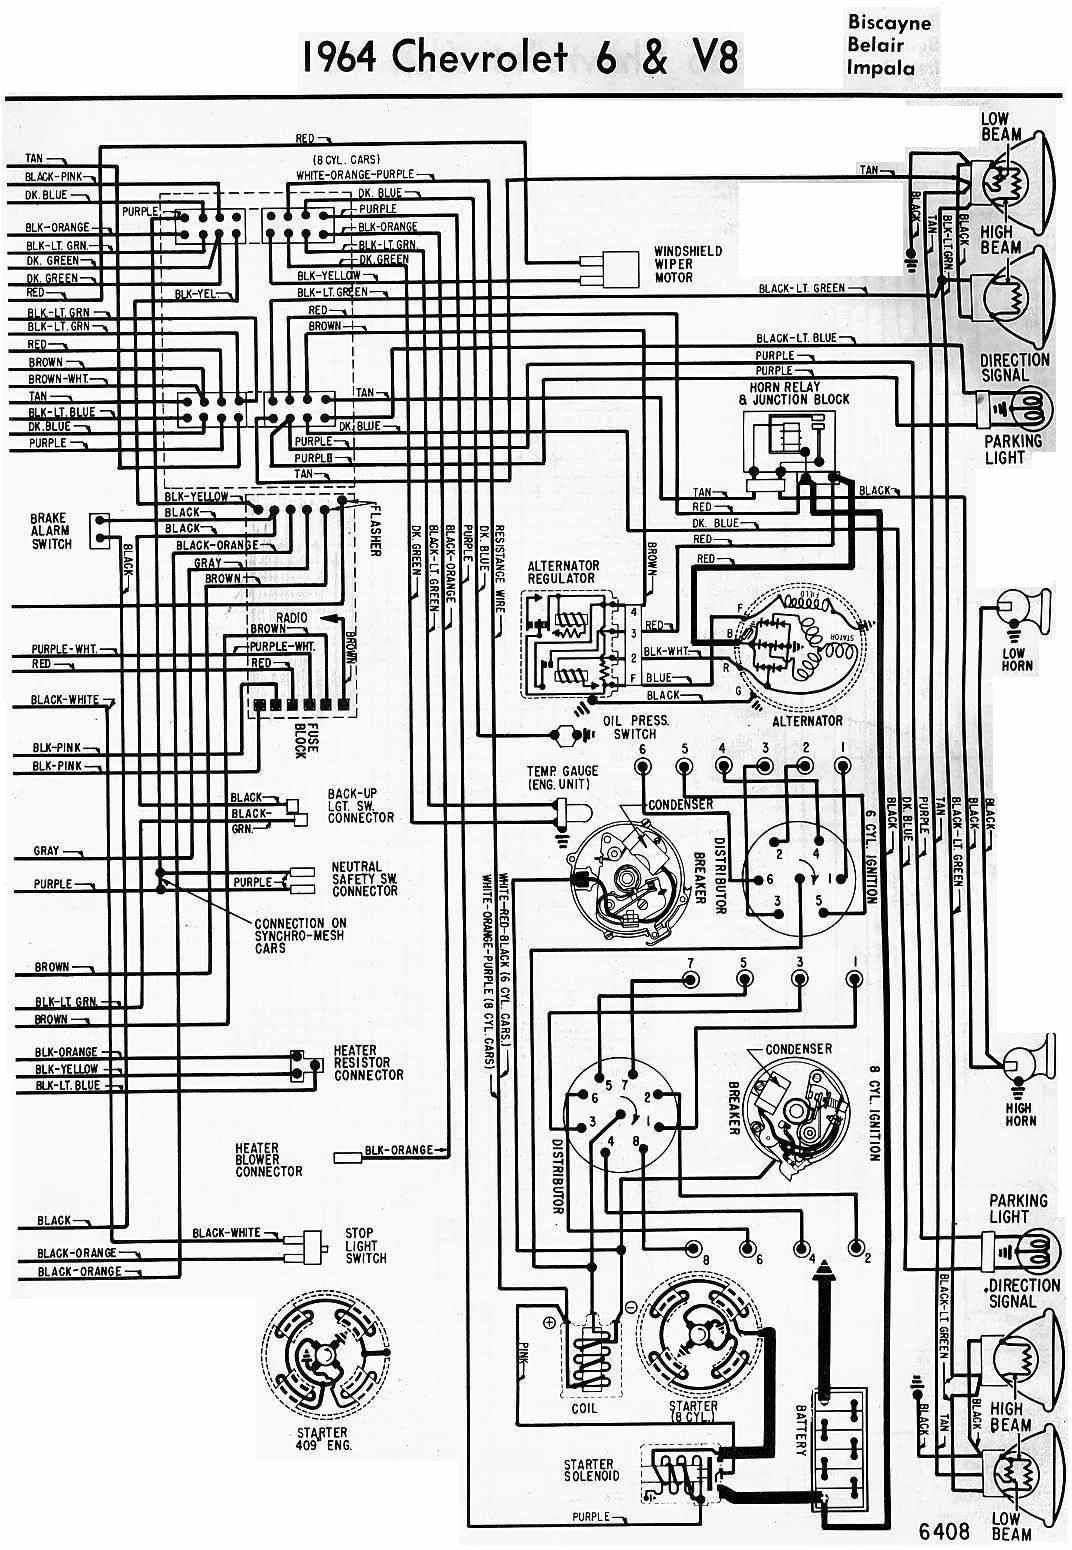 electrical wiring diagram of 1964 chevrolet 6 and v8 all [ 1072 x 1550 Pixel ]